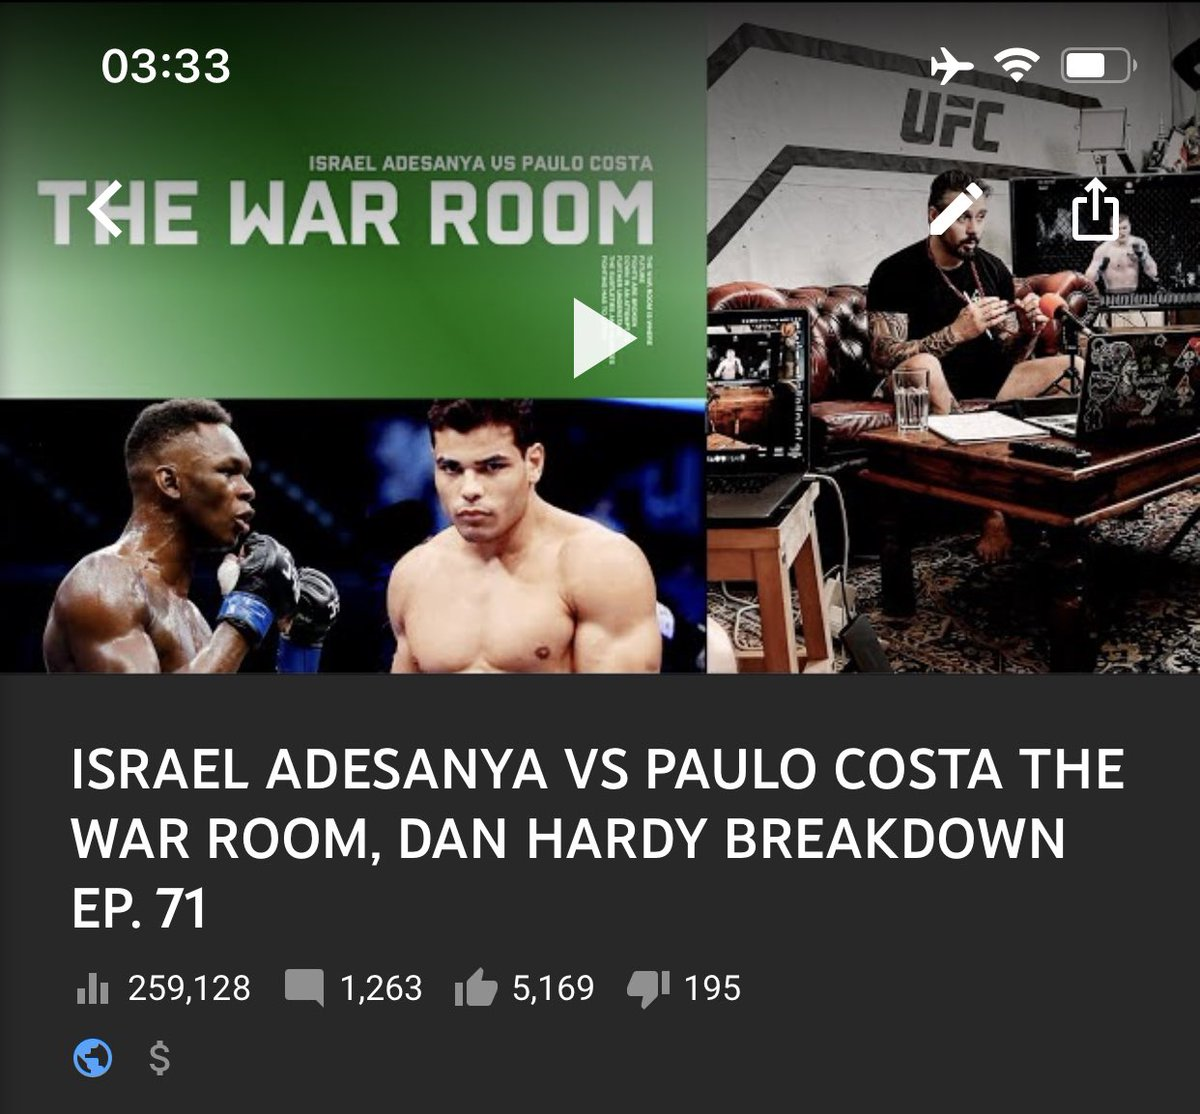 Thanks to everyone that watched and supported our #UFC253 main event #WarRoom 🙏🏼 Over 250k views before the event started! #FullReptile https://t.co/D15VAmcP8E